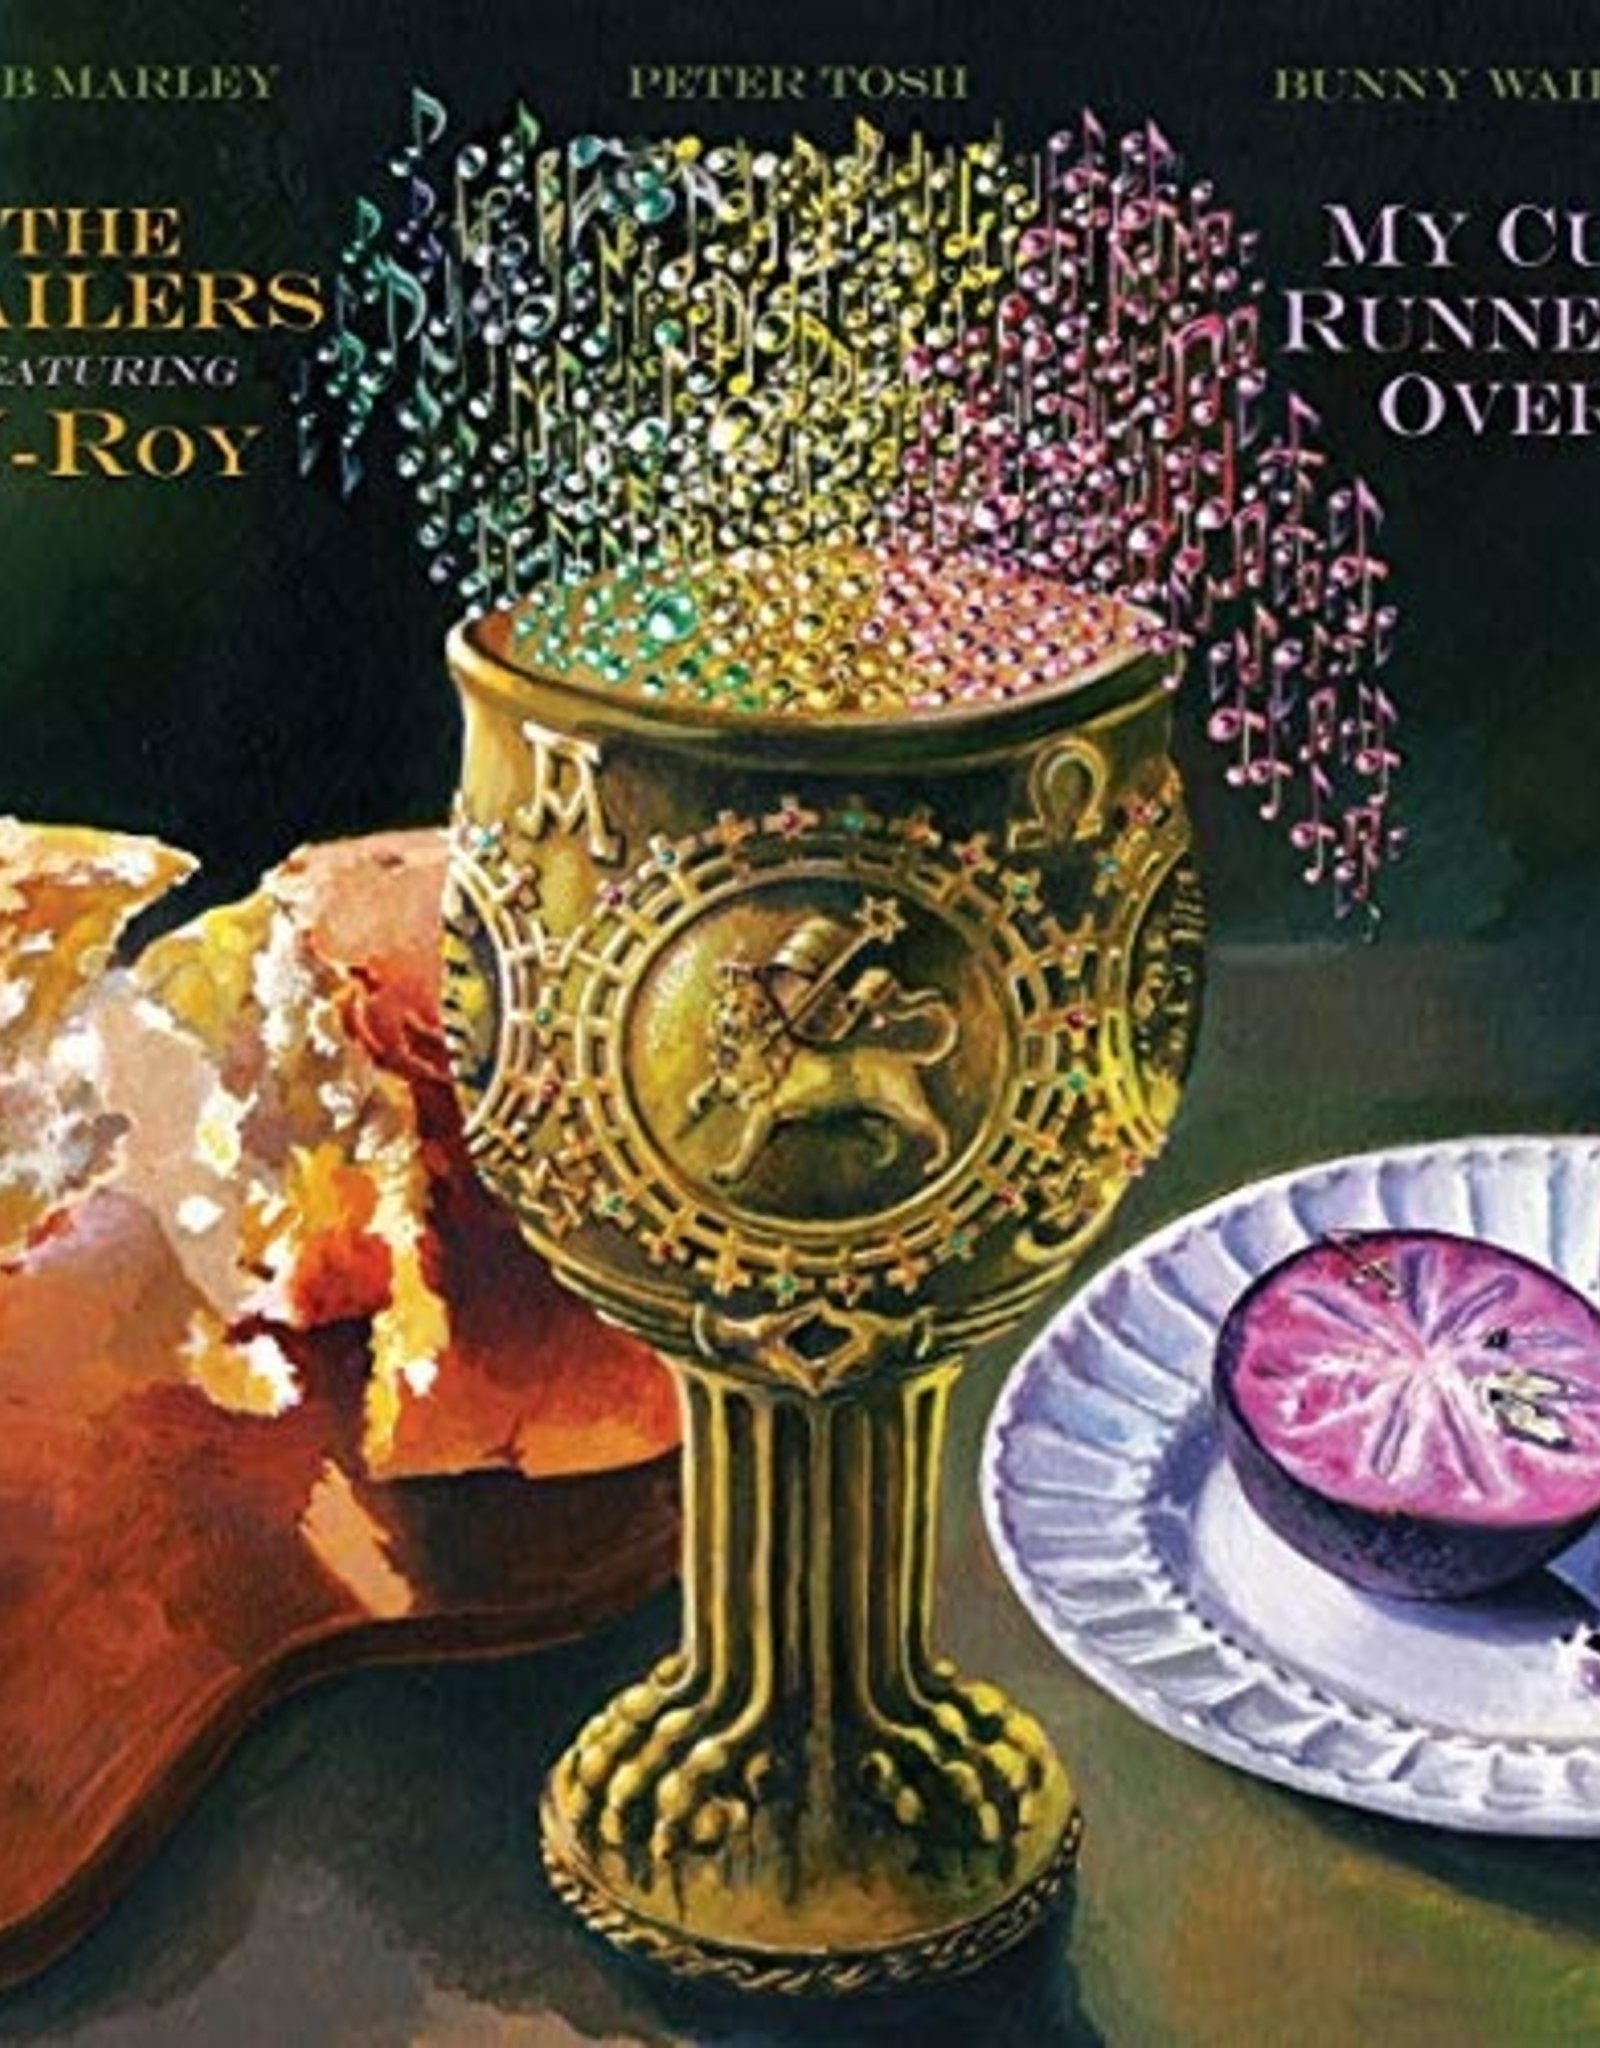 The Wailers featuring U-Roy - My Cup Runneth Over